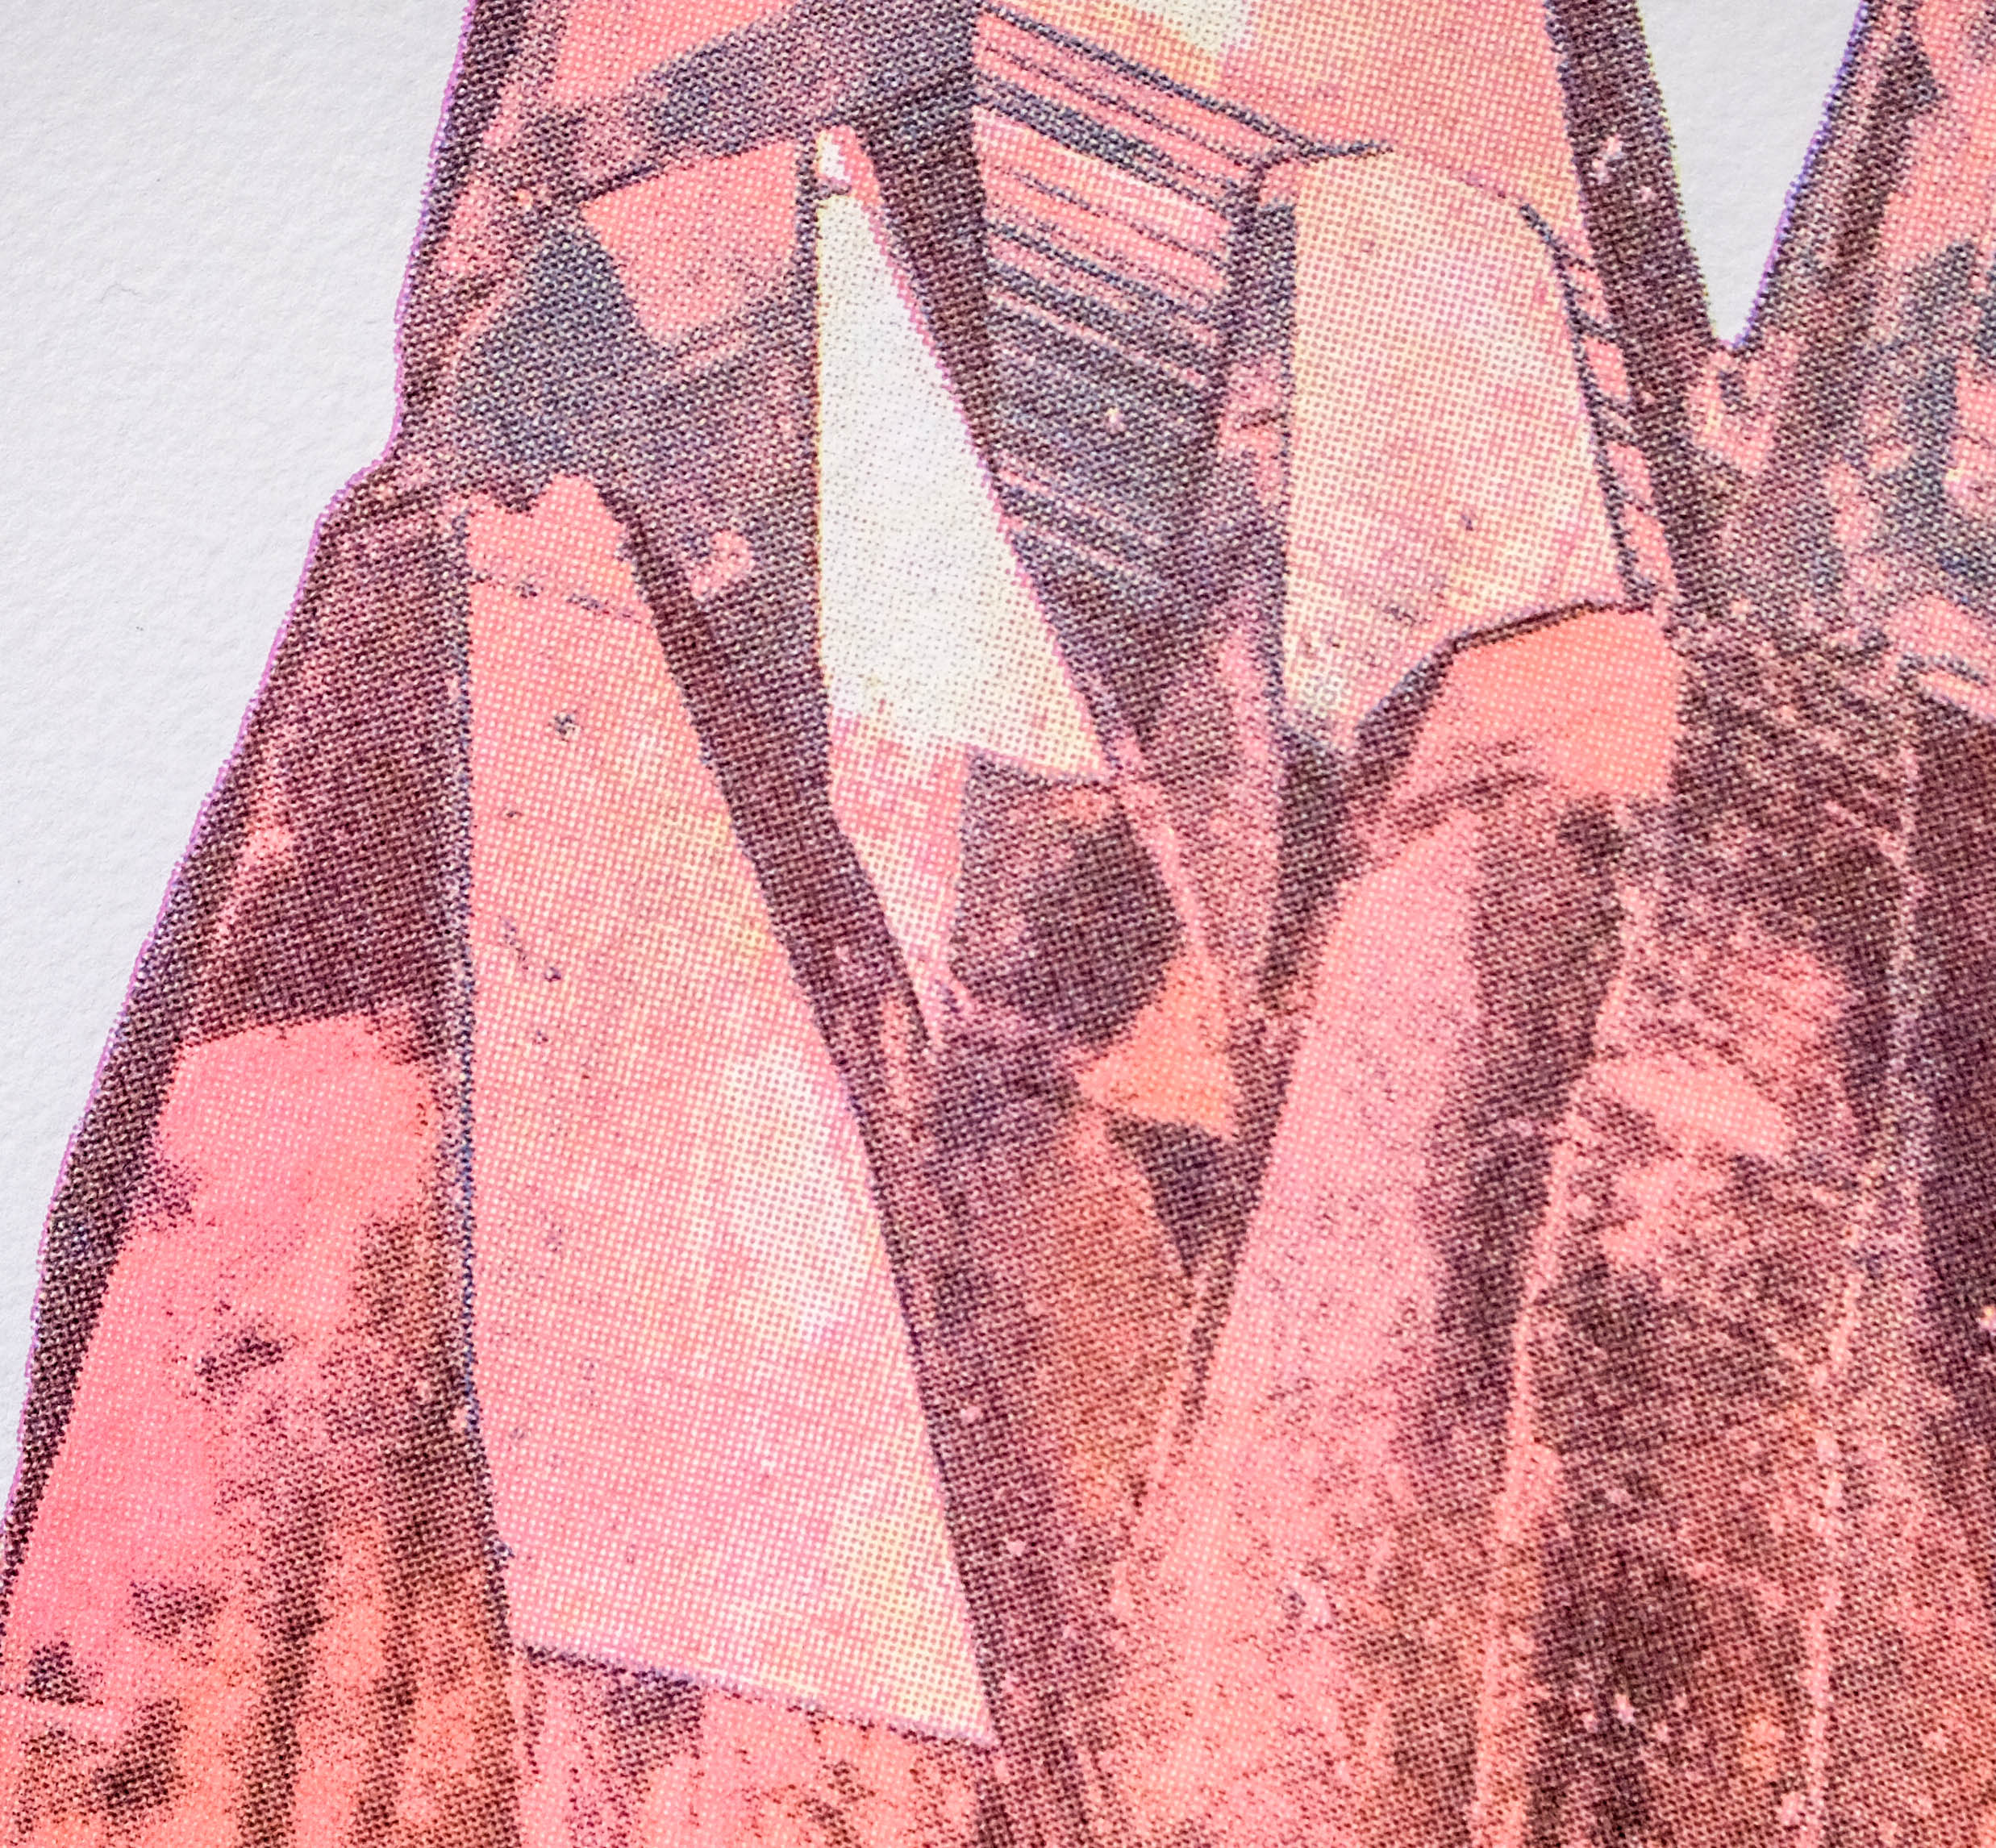 Rhodochronsite